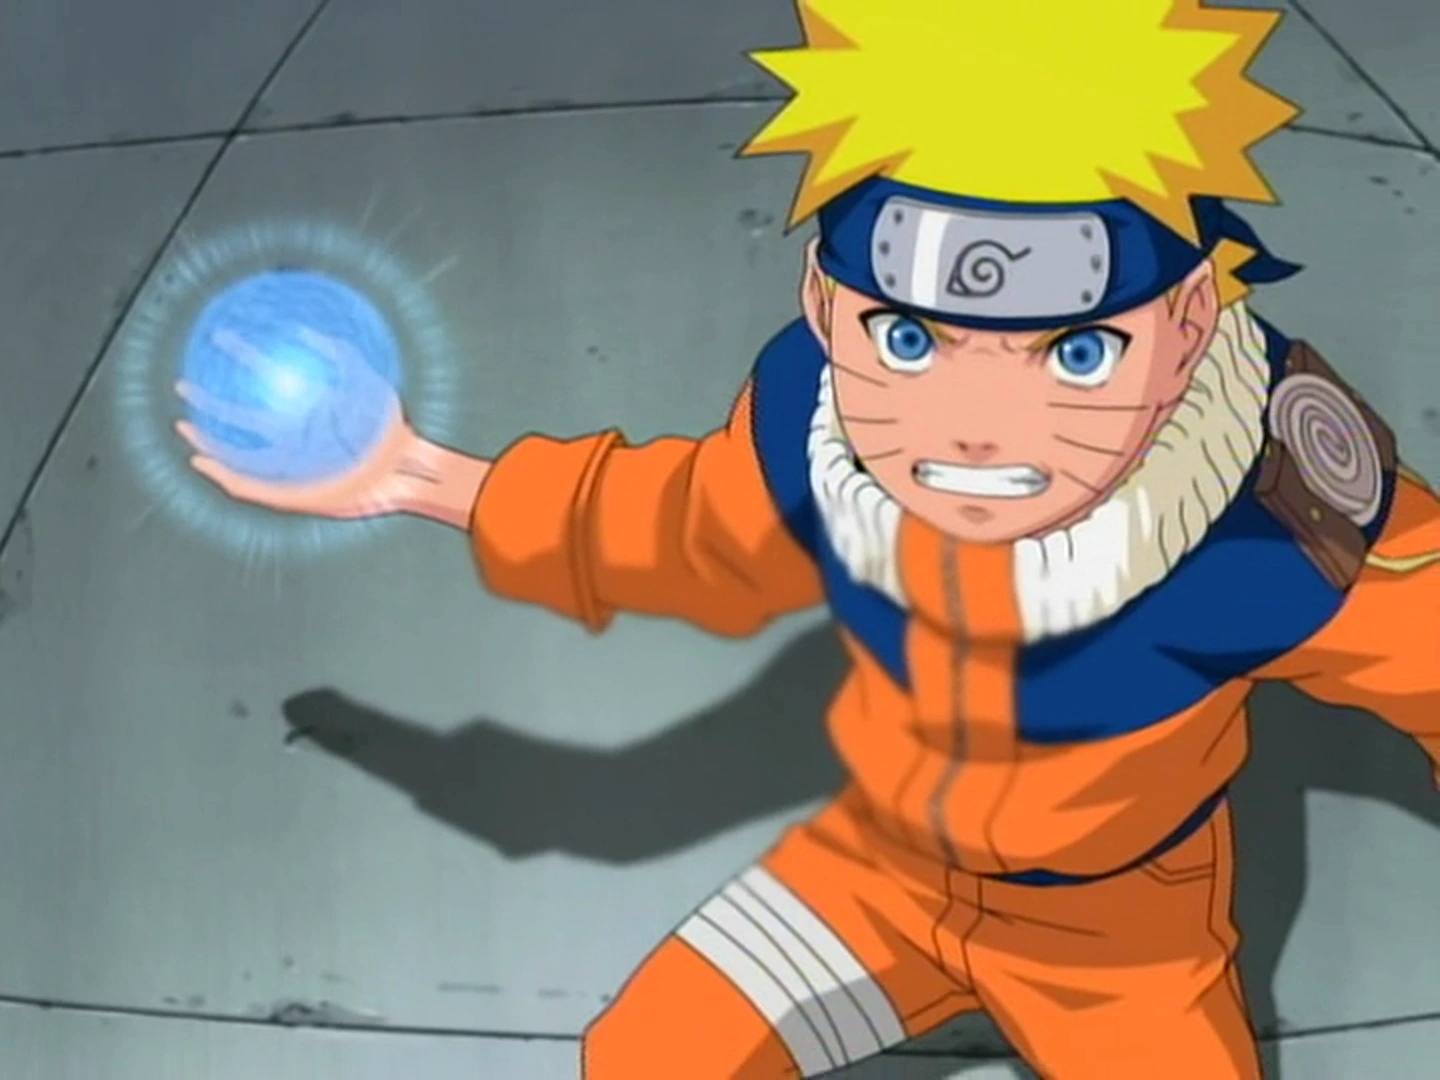 A young boy dressed in an orange and blue jumpsuit holding a blue ball of light in his hand.